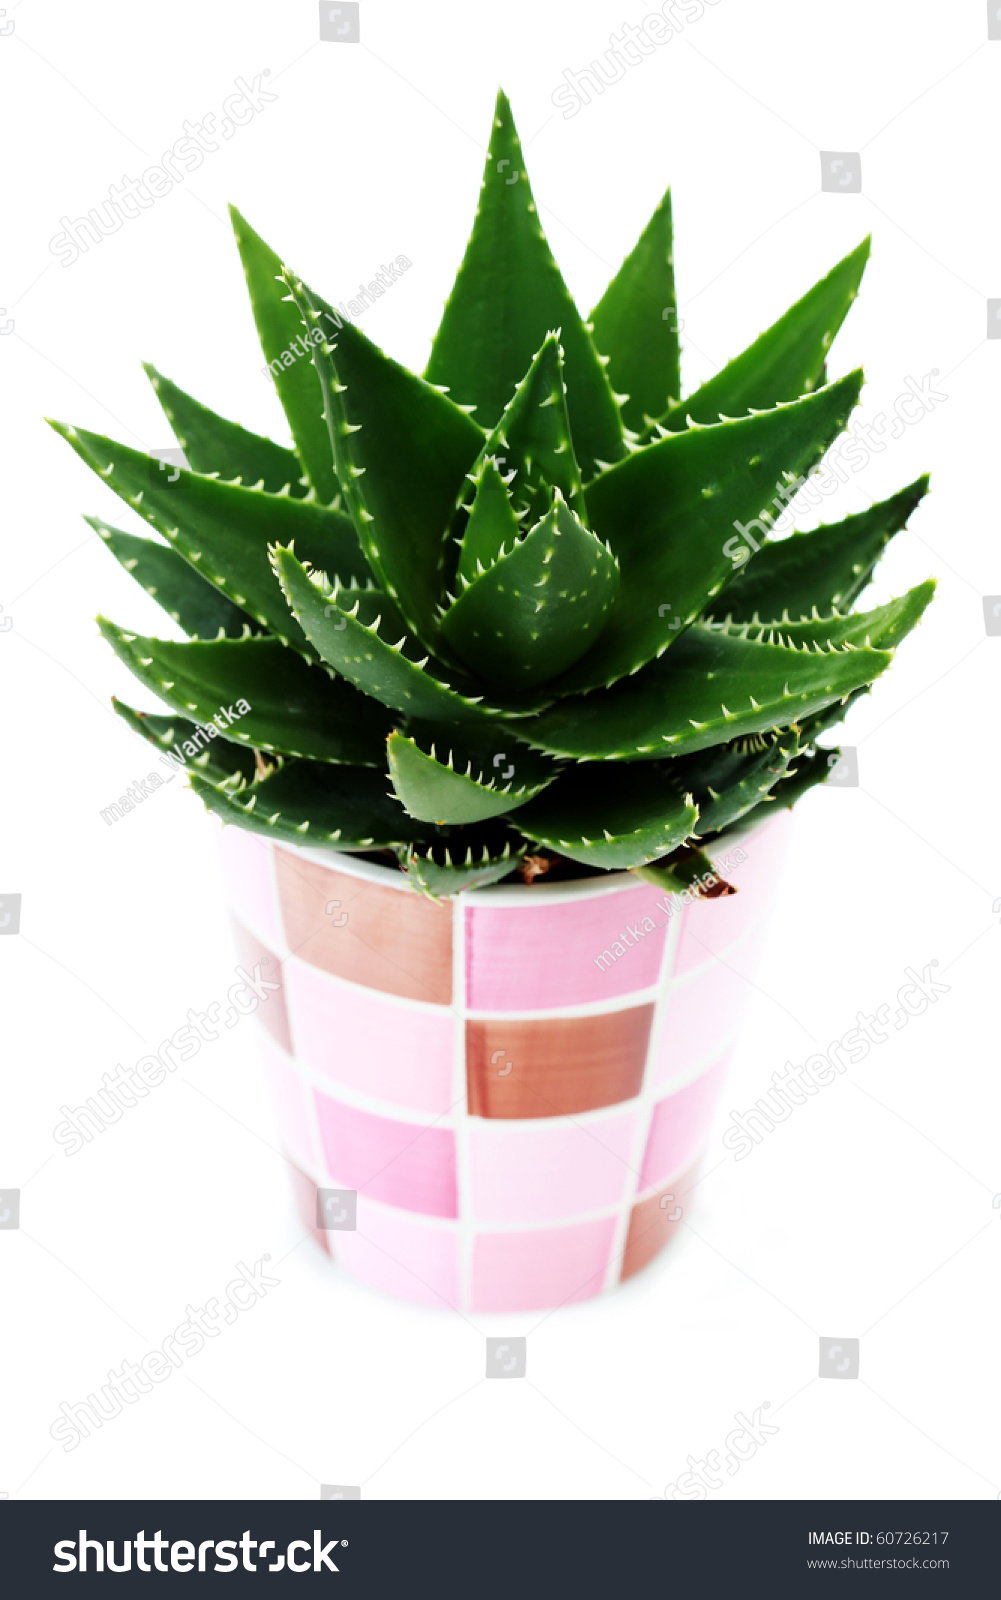 close ups of aloe vera plant on white background flowers and plants stock photo 60726217. Black Bedroom Furniture Sets. Home Design Ideas